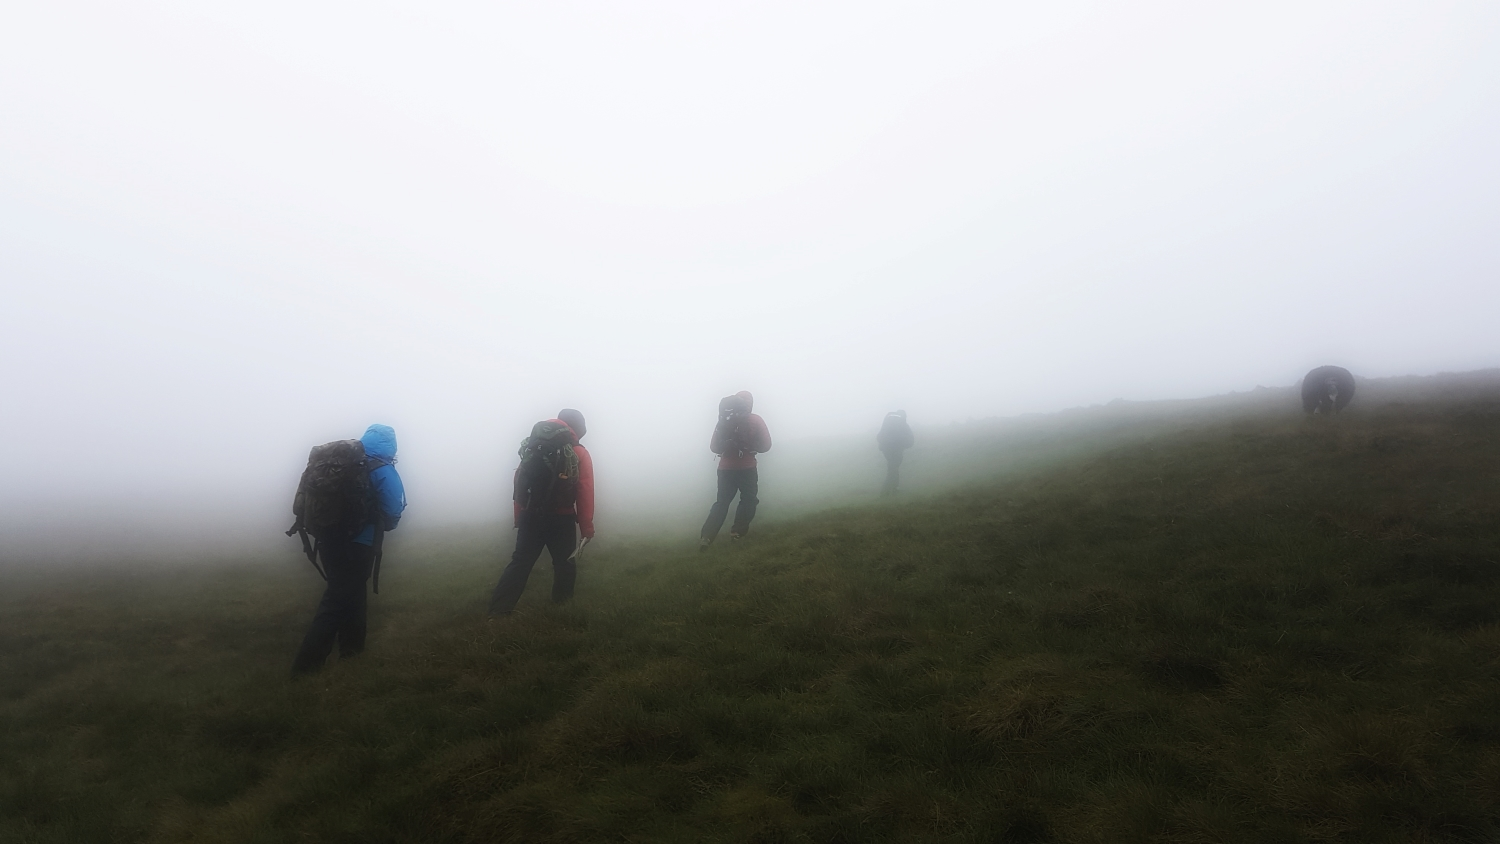 Wednesday 5th June: navigating in the mist